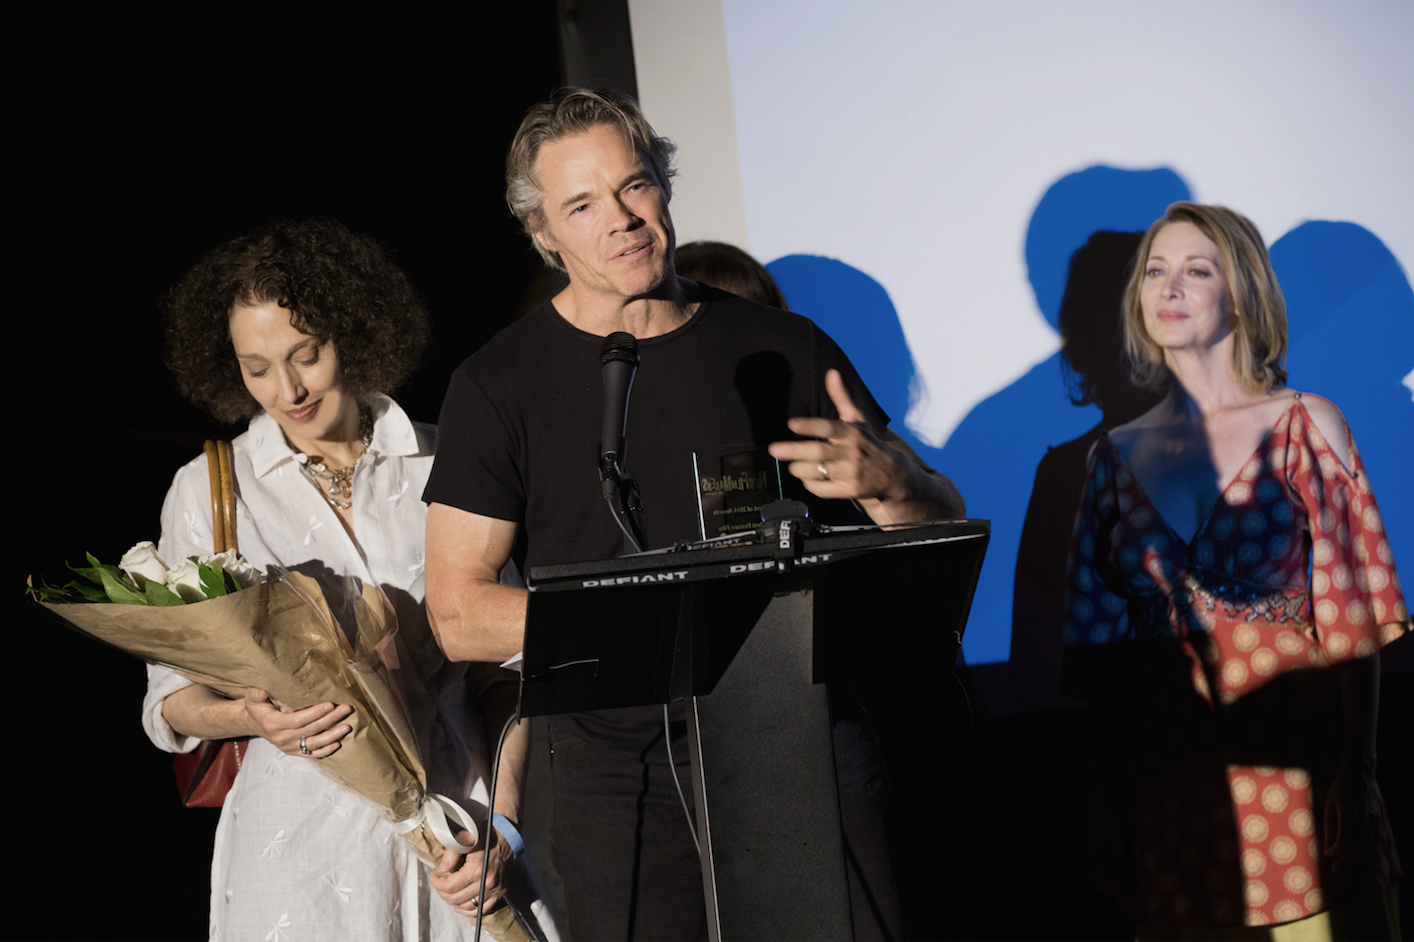 Writer-director Tjardus Greidanus wins for Best Feature at NFMLA's 2014 Best of Awards.  Producer Laura Davis on the left; presenter Sharon Lawrence on the right.